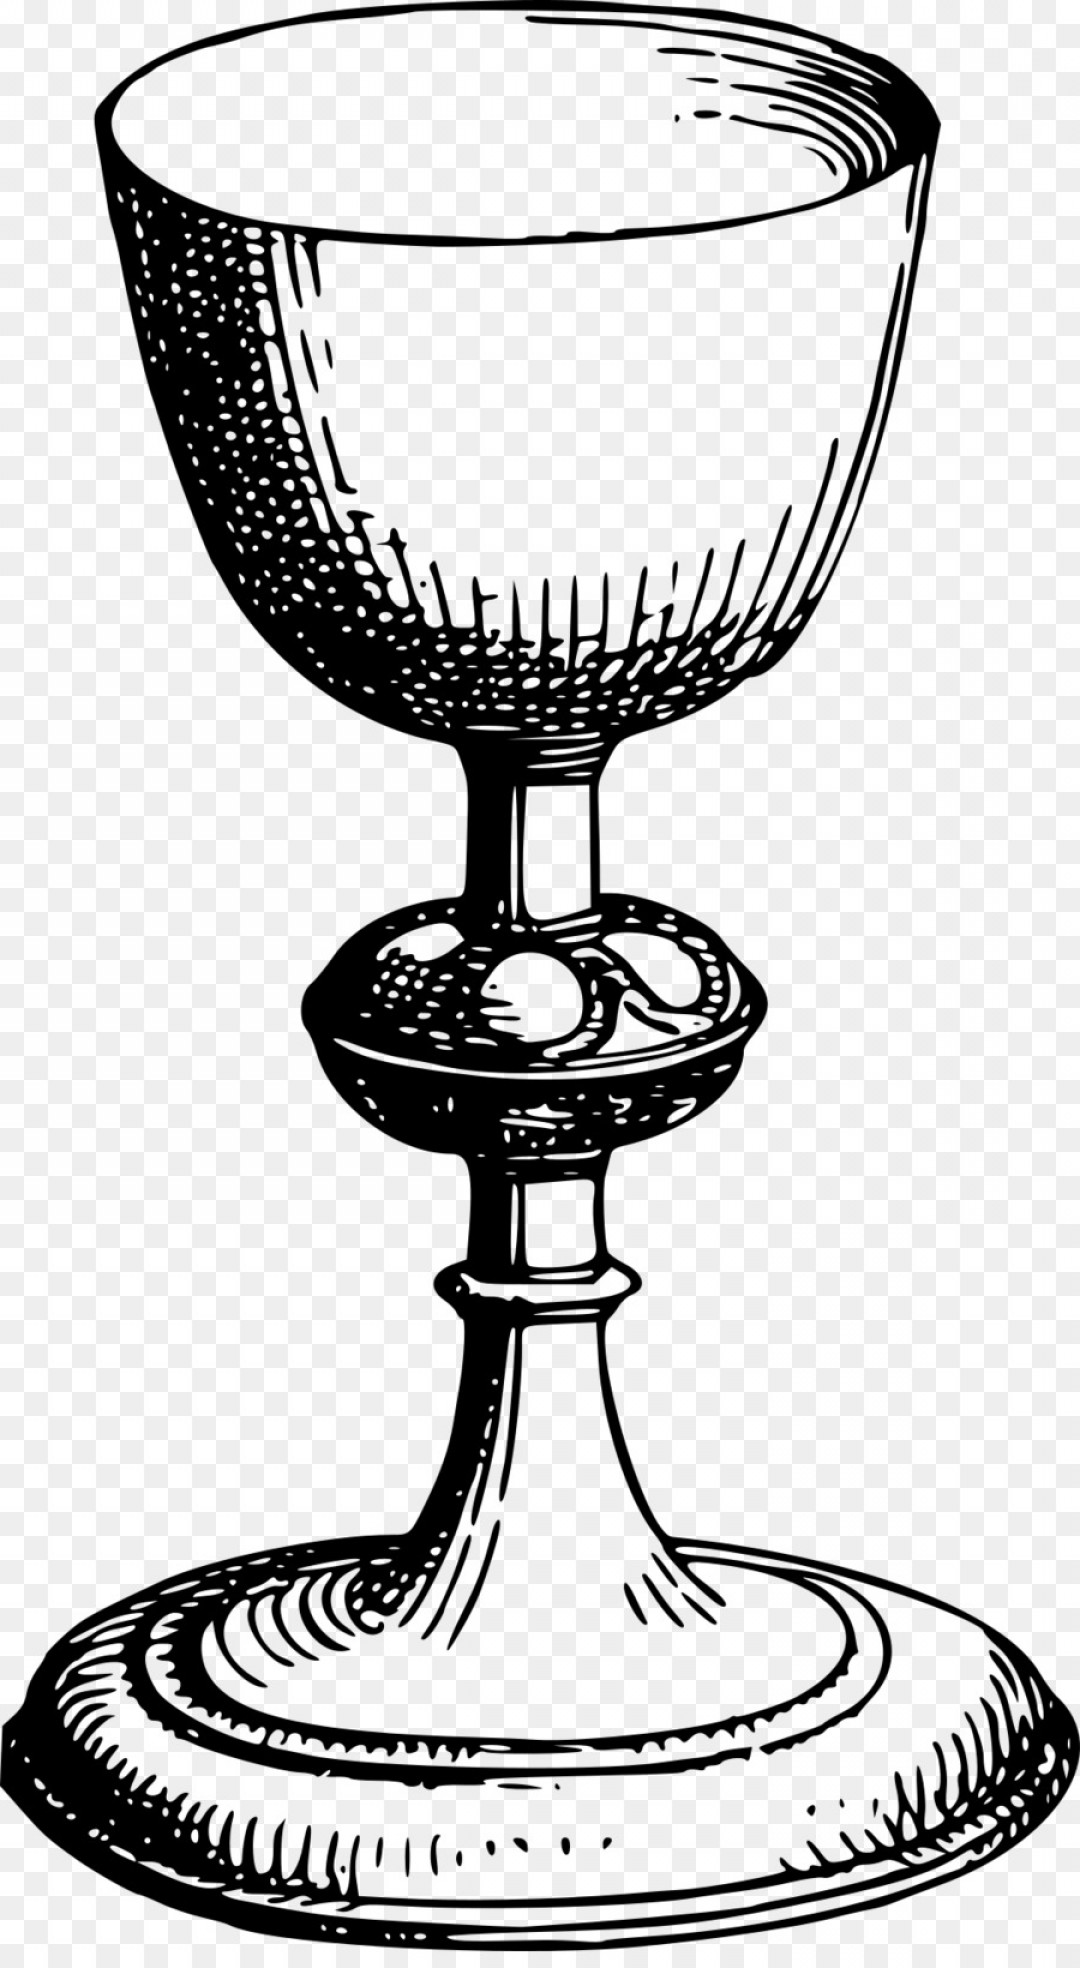 Catholic Clip Art Vector: Eucharist In The Catholic Church Last Supper Symbo Wine Vector